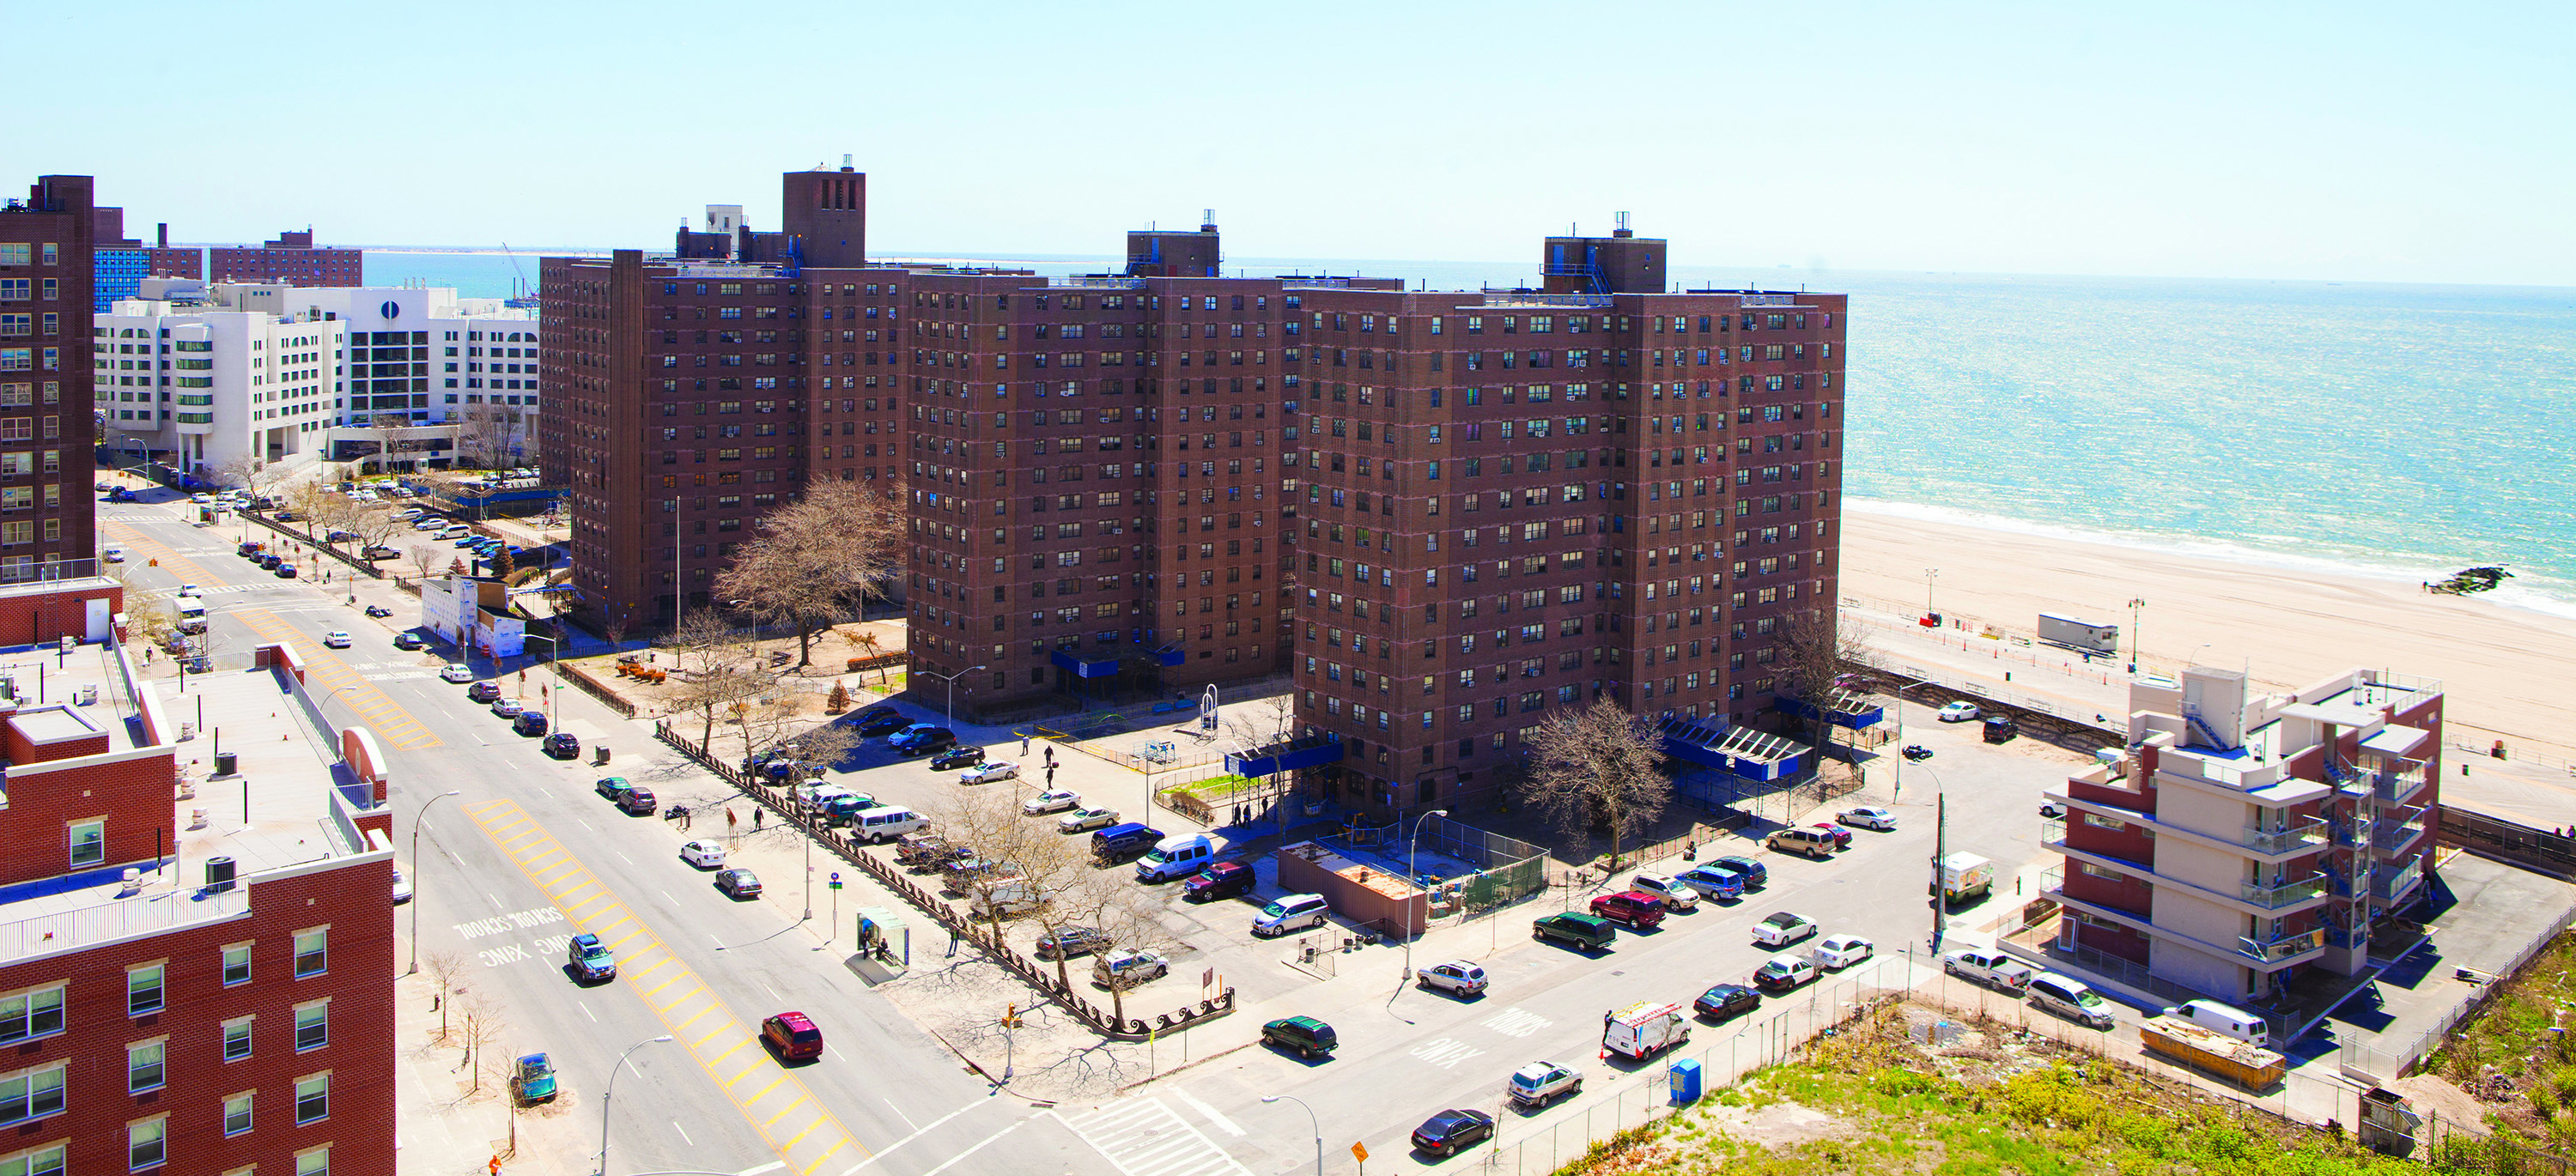 NYCHA Sandy Resiliency and Renewal at Coney Island